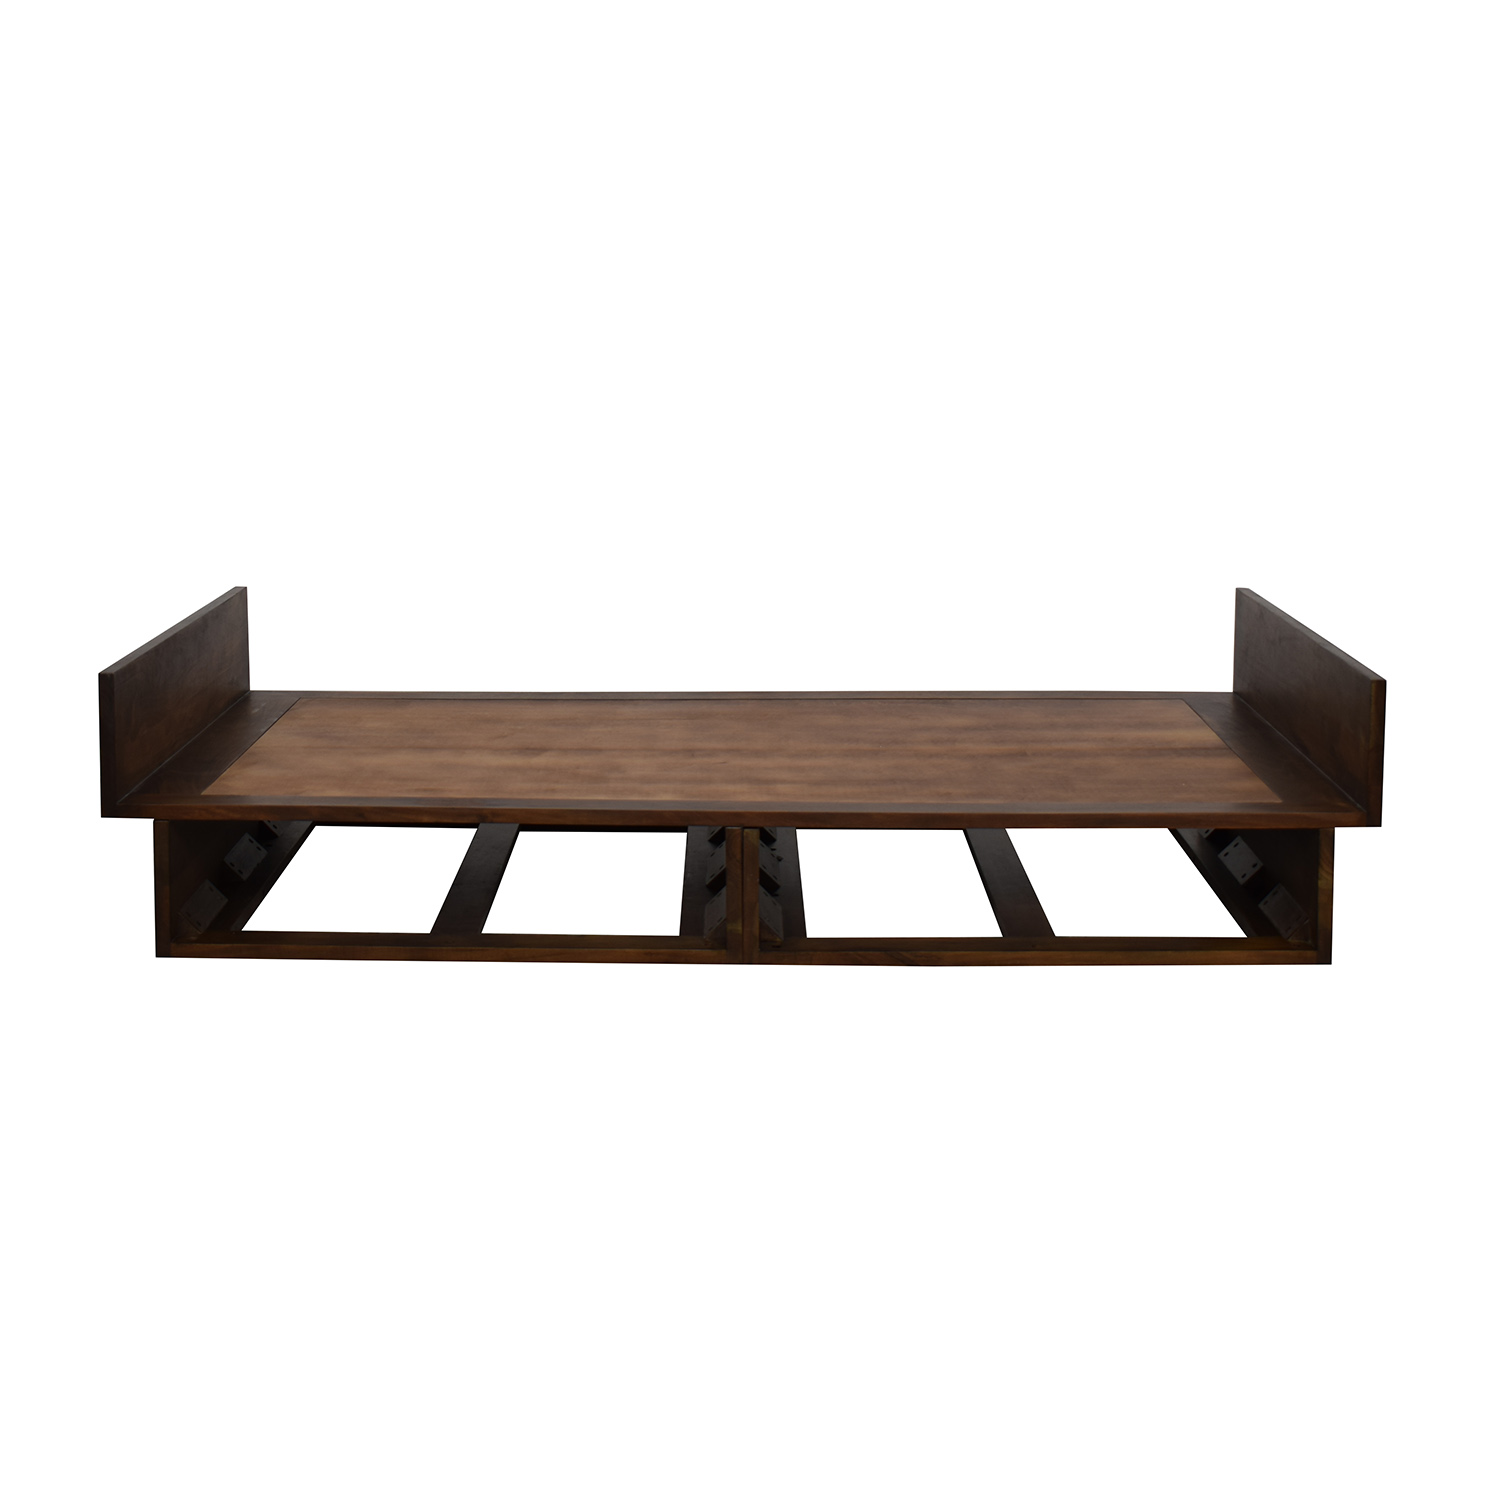 buy CB2 CB2 Fred Segal Daybed Frame online